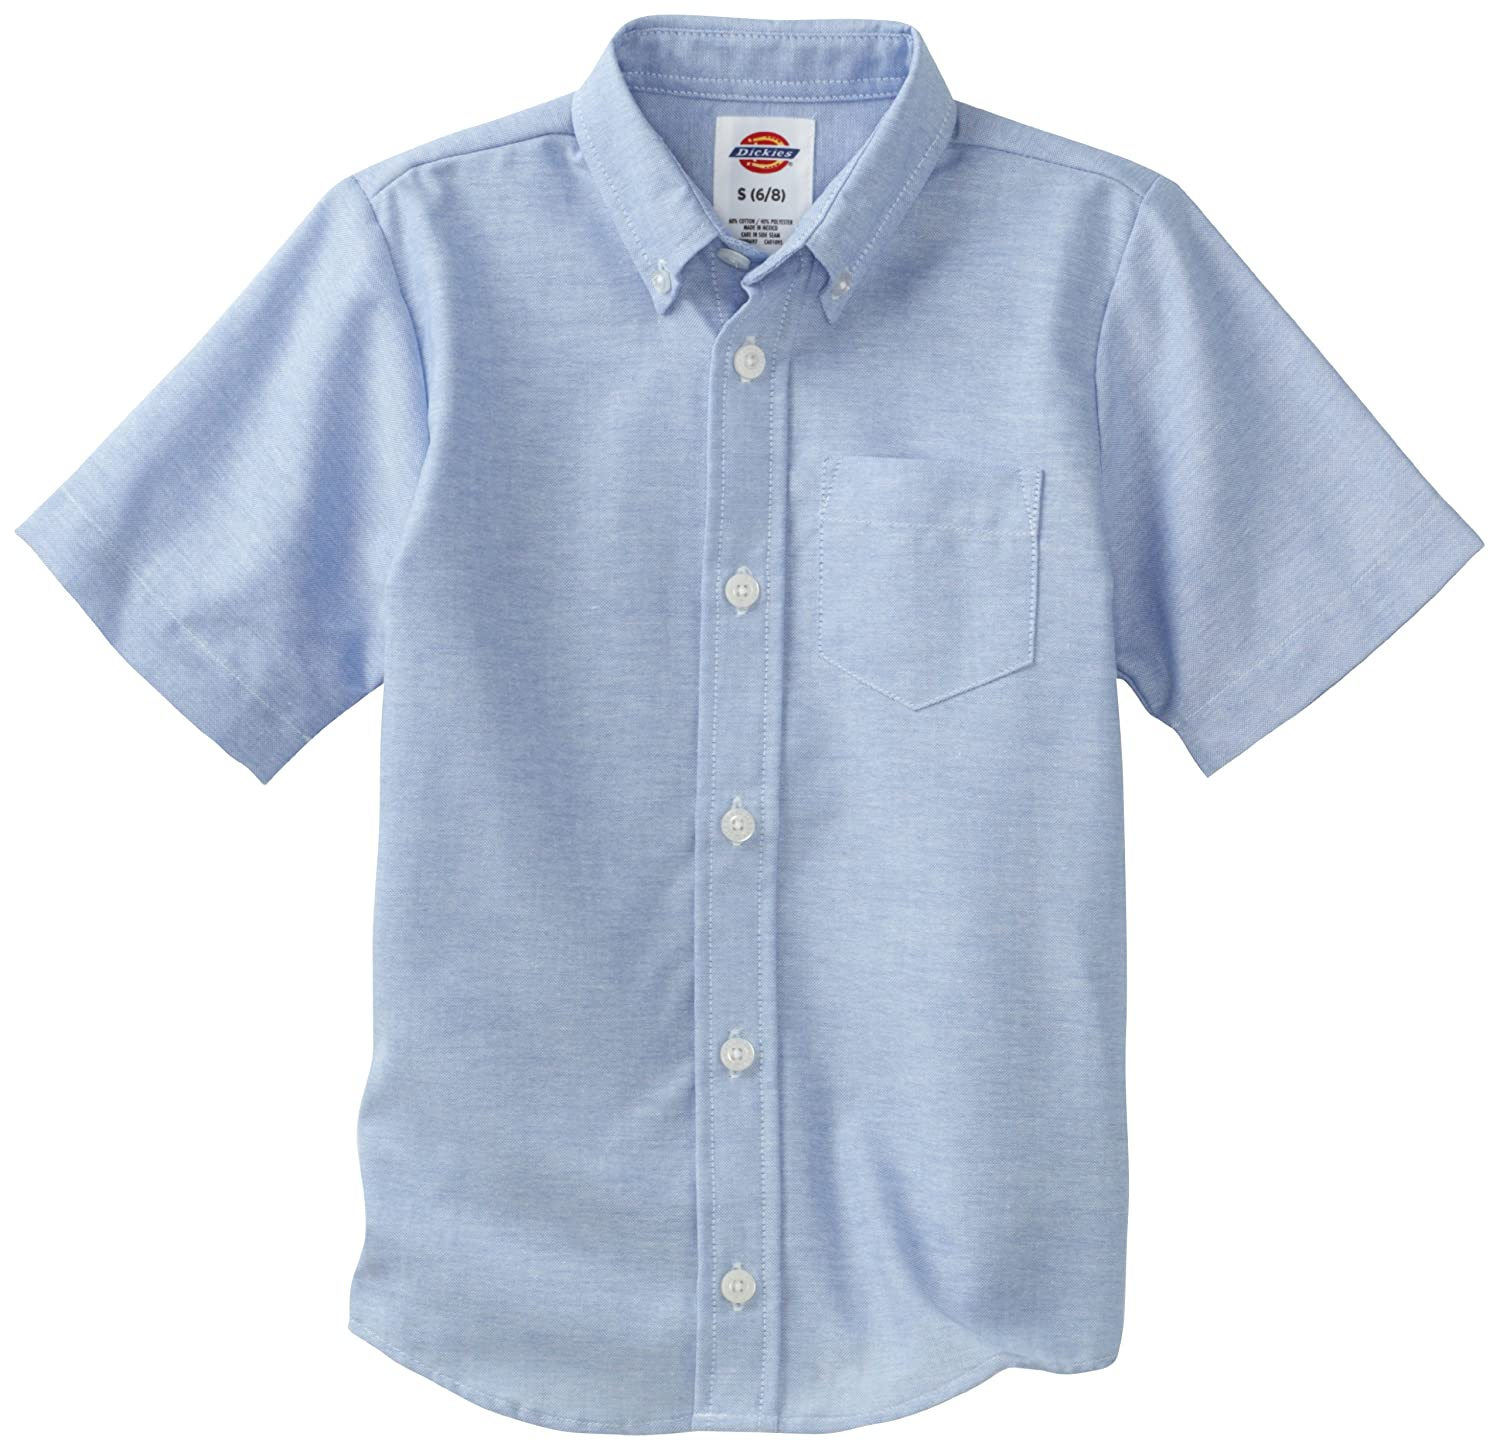 Dickies Boys Big Boys Short Sleeve Oxford Shirt Dickies Kids DIC-KS920